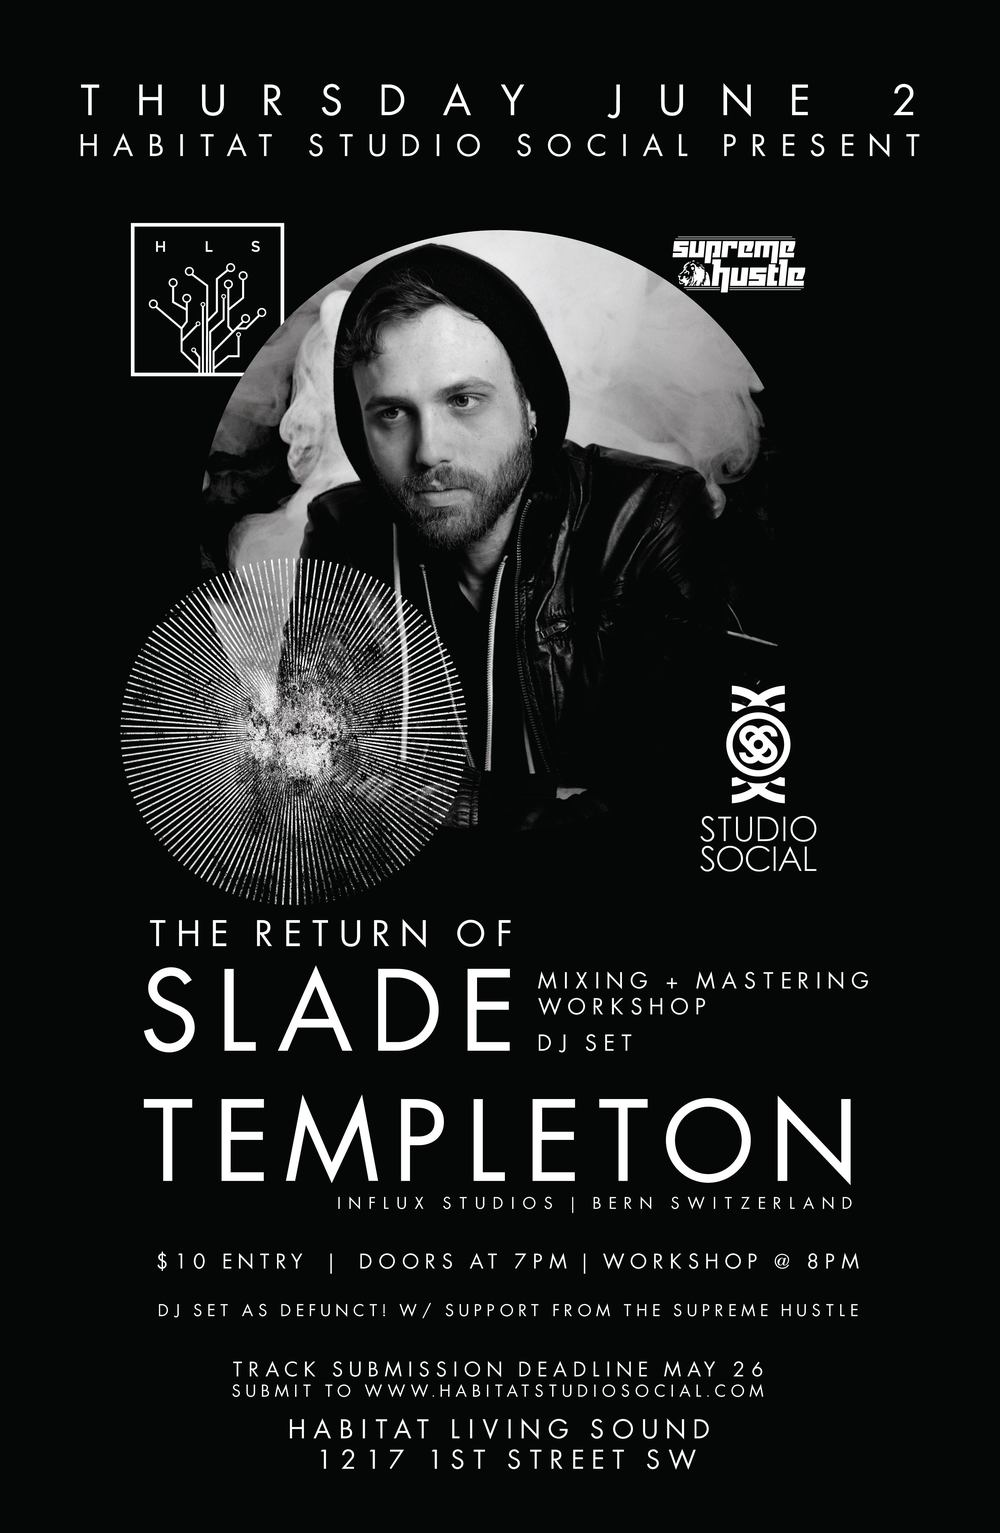 Slade_templeton_Habitat_Living_sound.jpeg